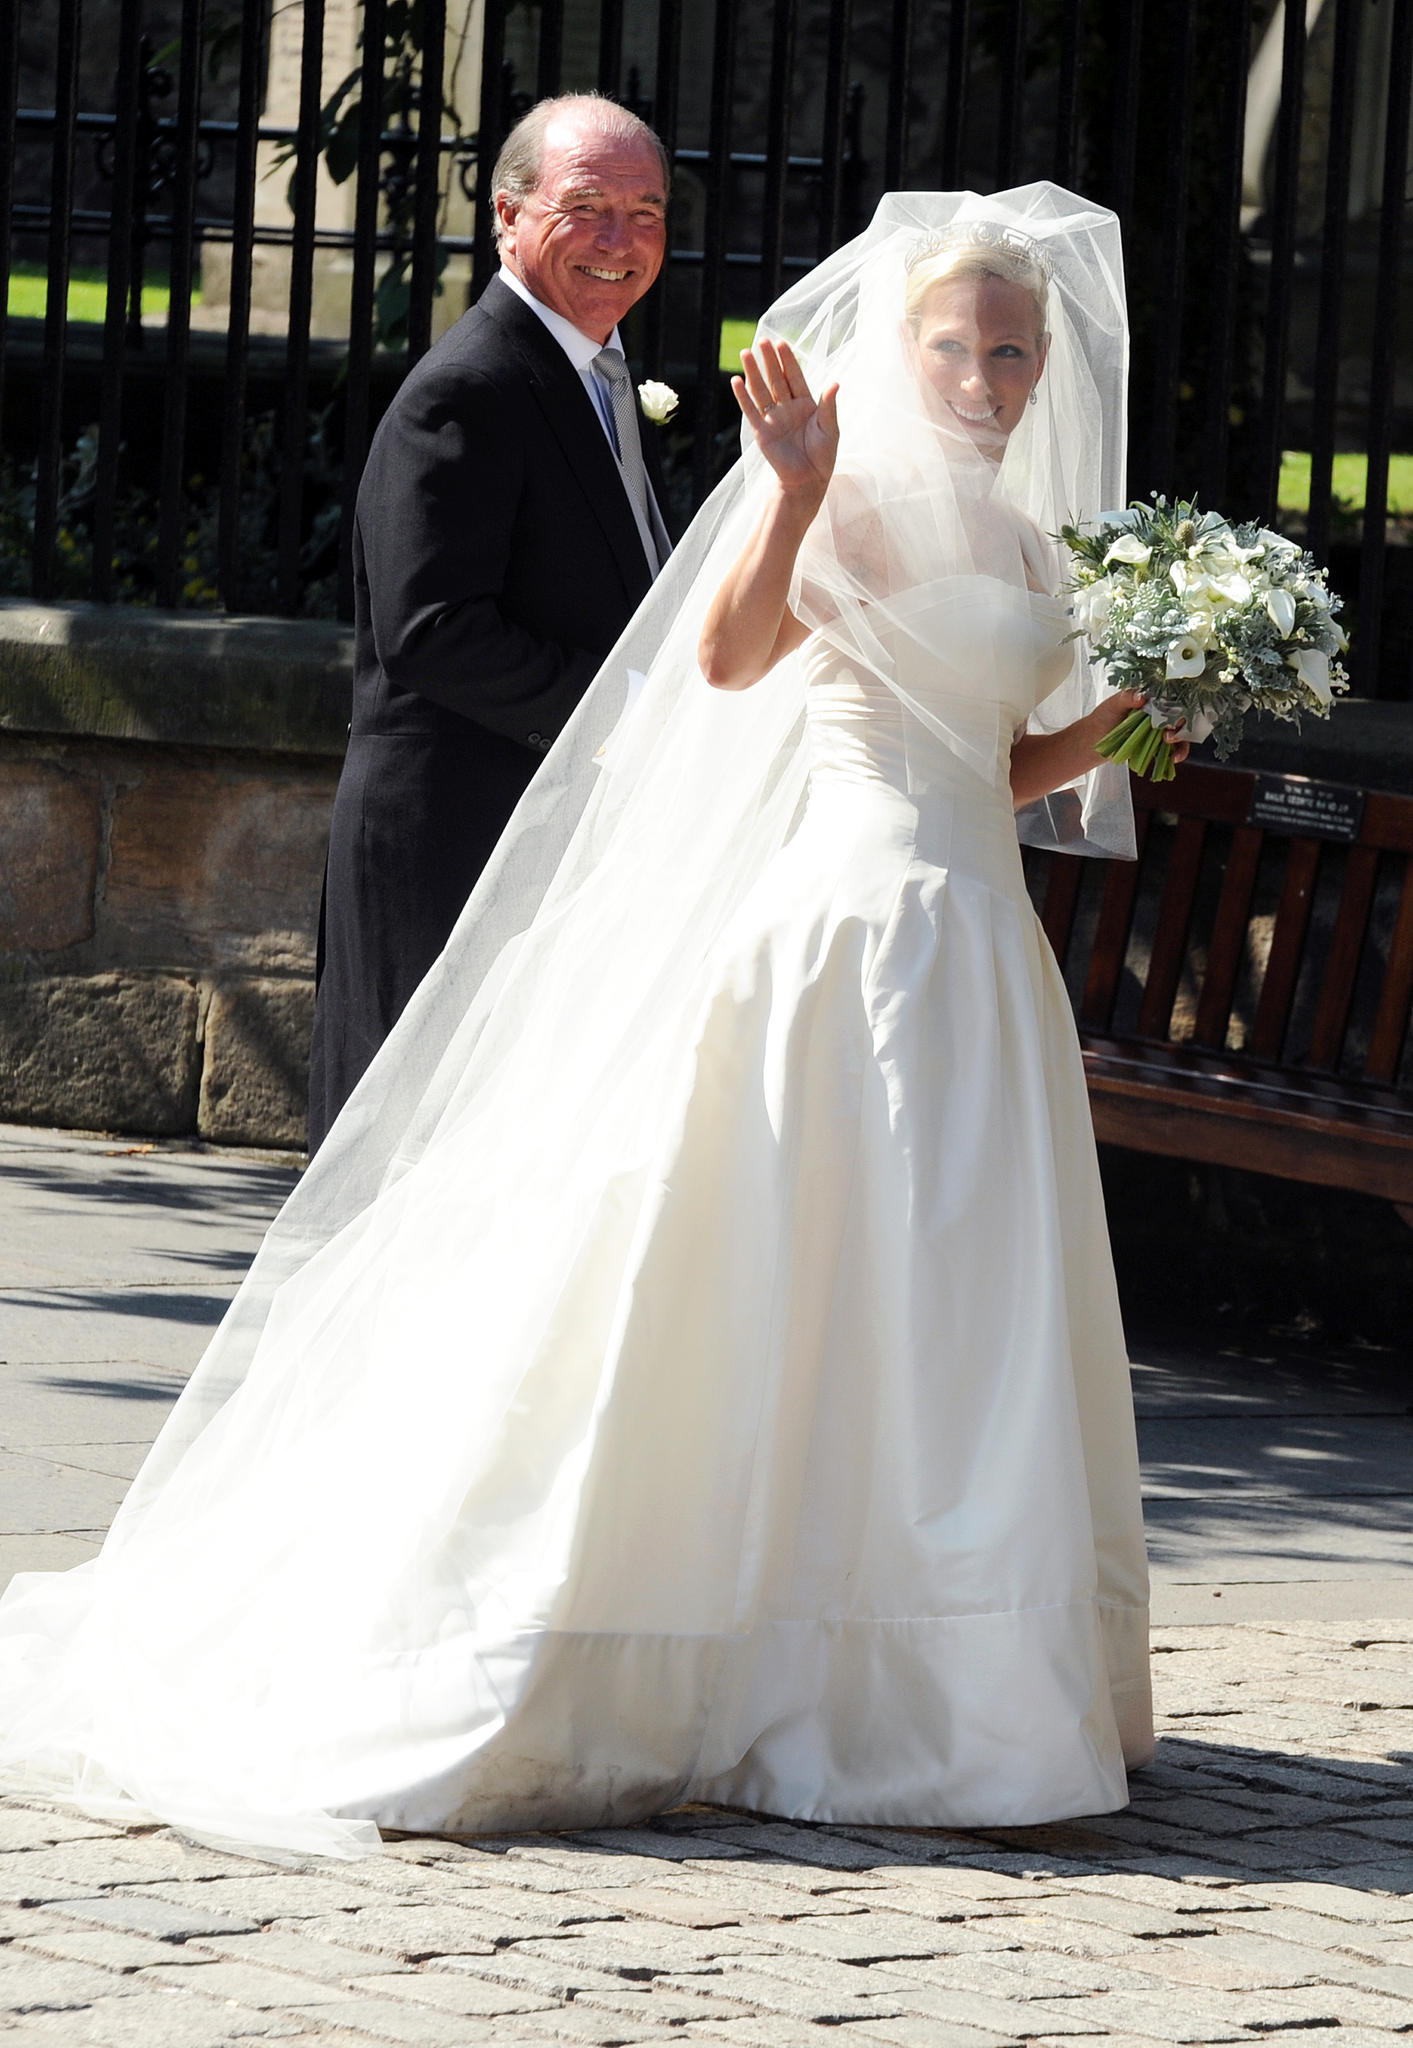 Schlicht, traditionell, elegant: Zara Phillips heiratet 2011 in einem Design von Stewart Parvin.